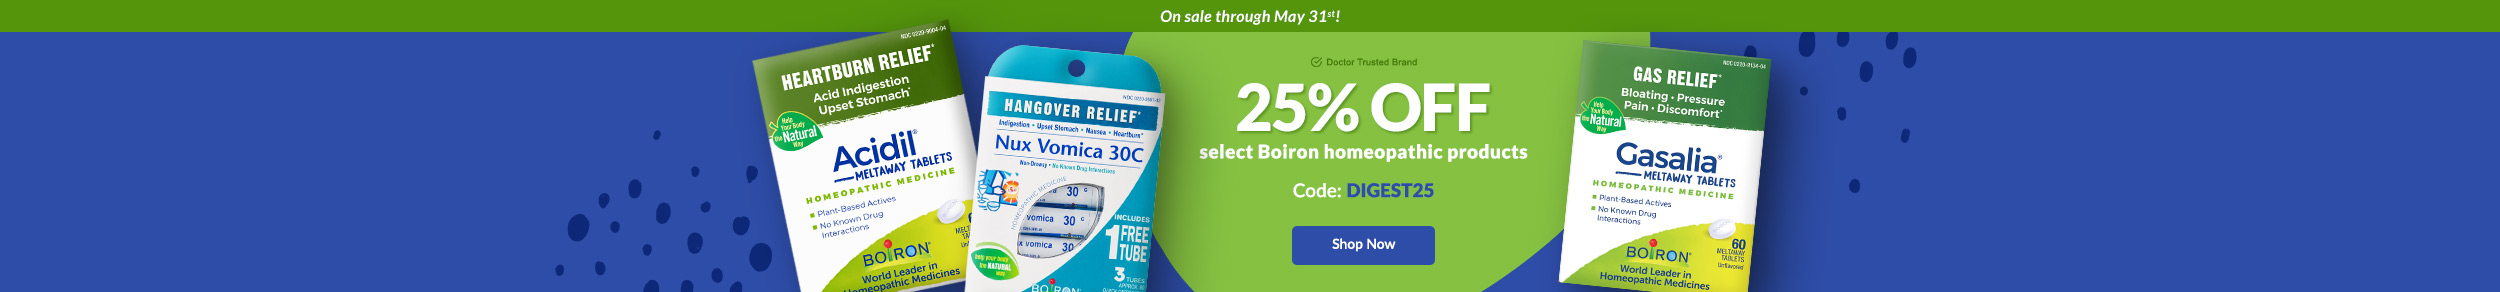 On sale through May 31st! Doctor Trusted Brand: 25% OFF select Boiron homeopathic products. Code: DIGEST25. SHOP NOW!